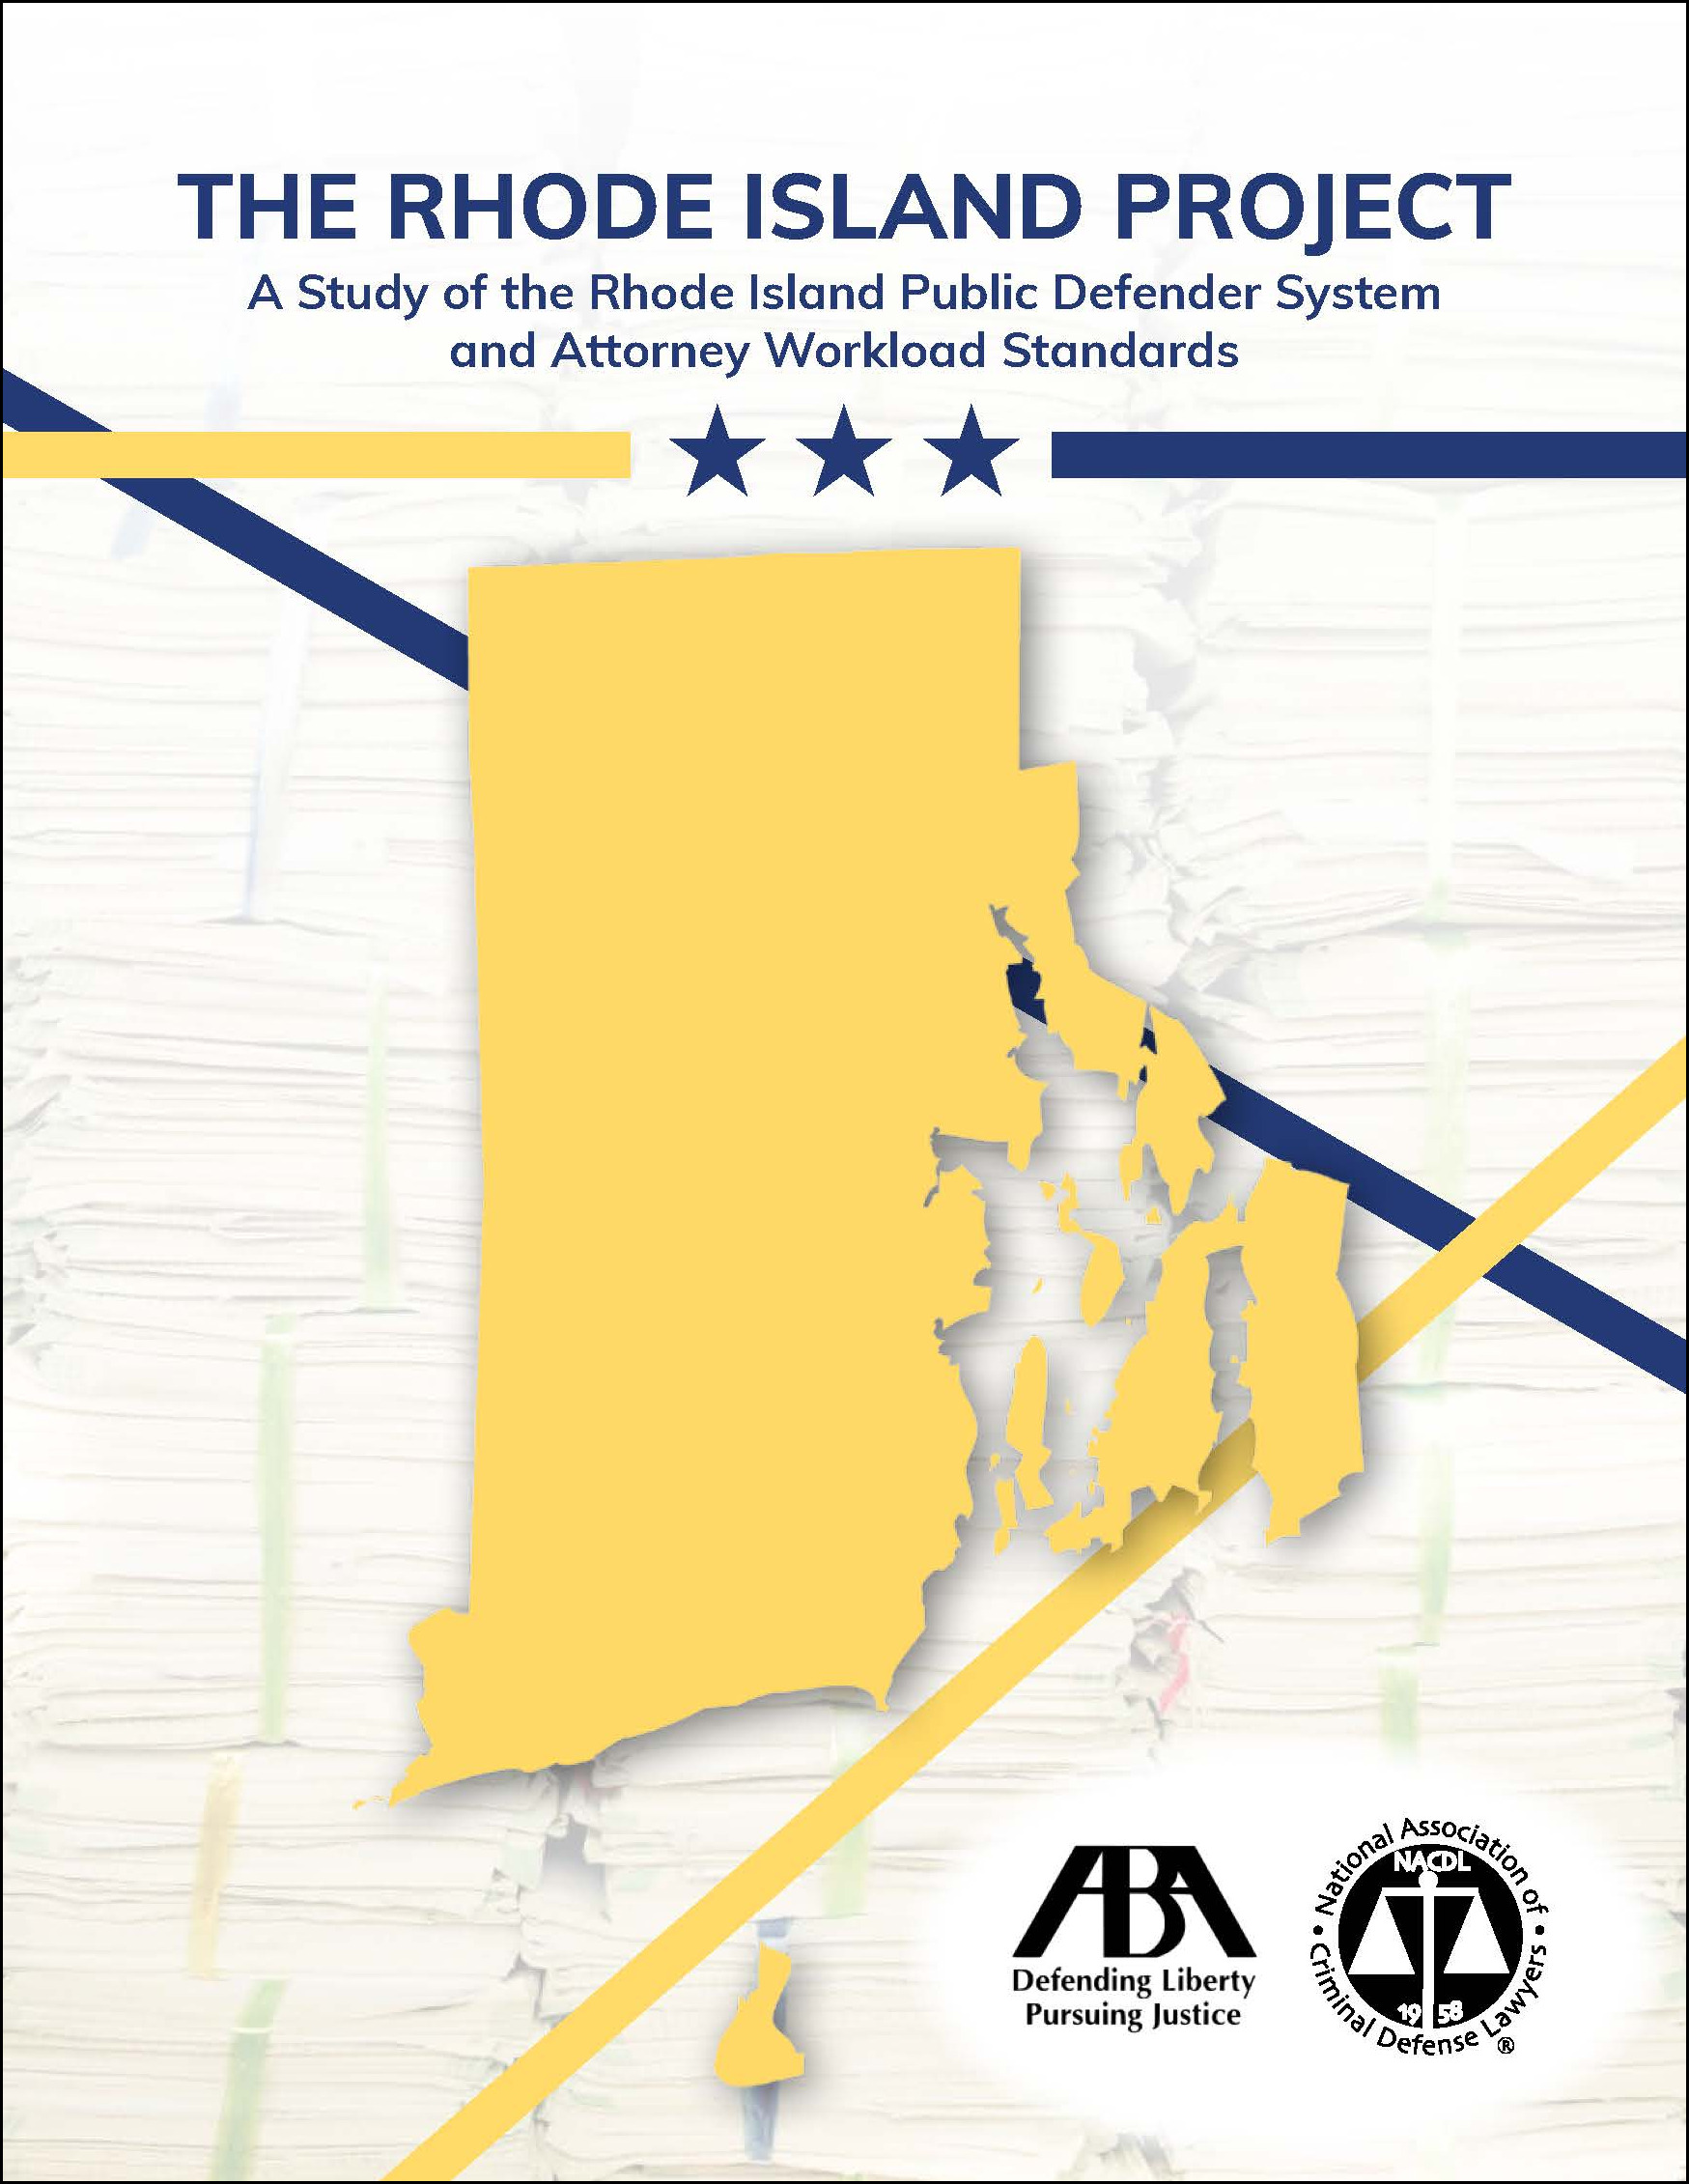 The Rhode Island Project: A Study of the Rhode Island Public Defender System Cover